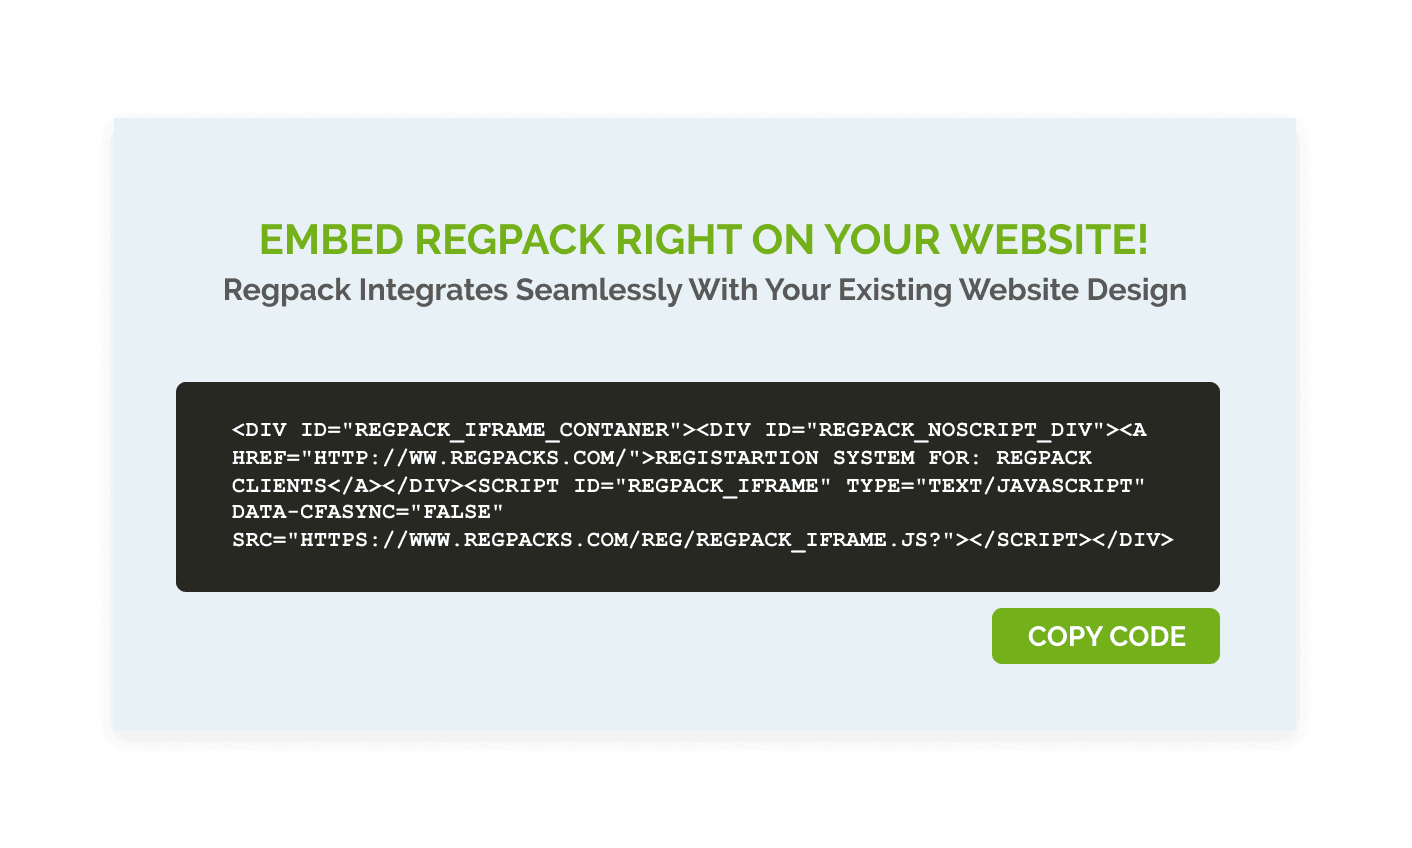 Embed your registration form on your website easily with Regpack.